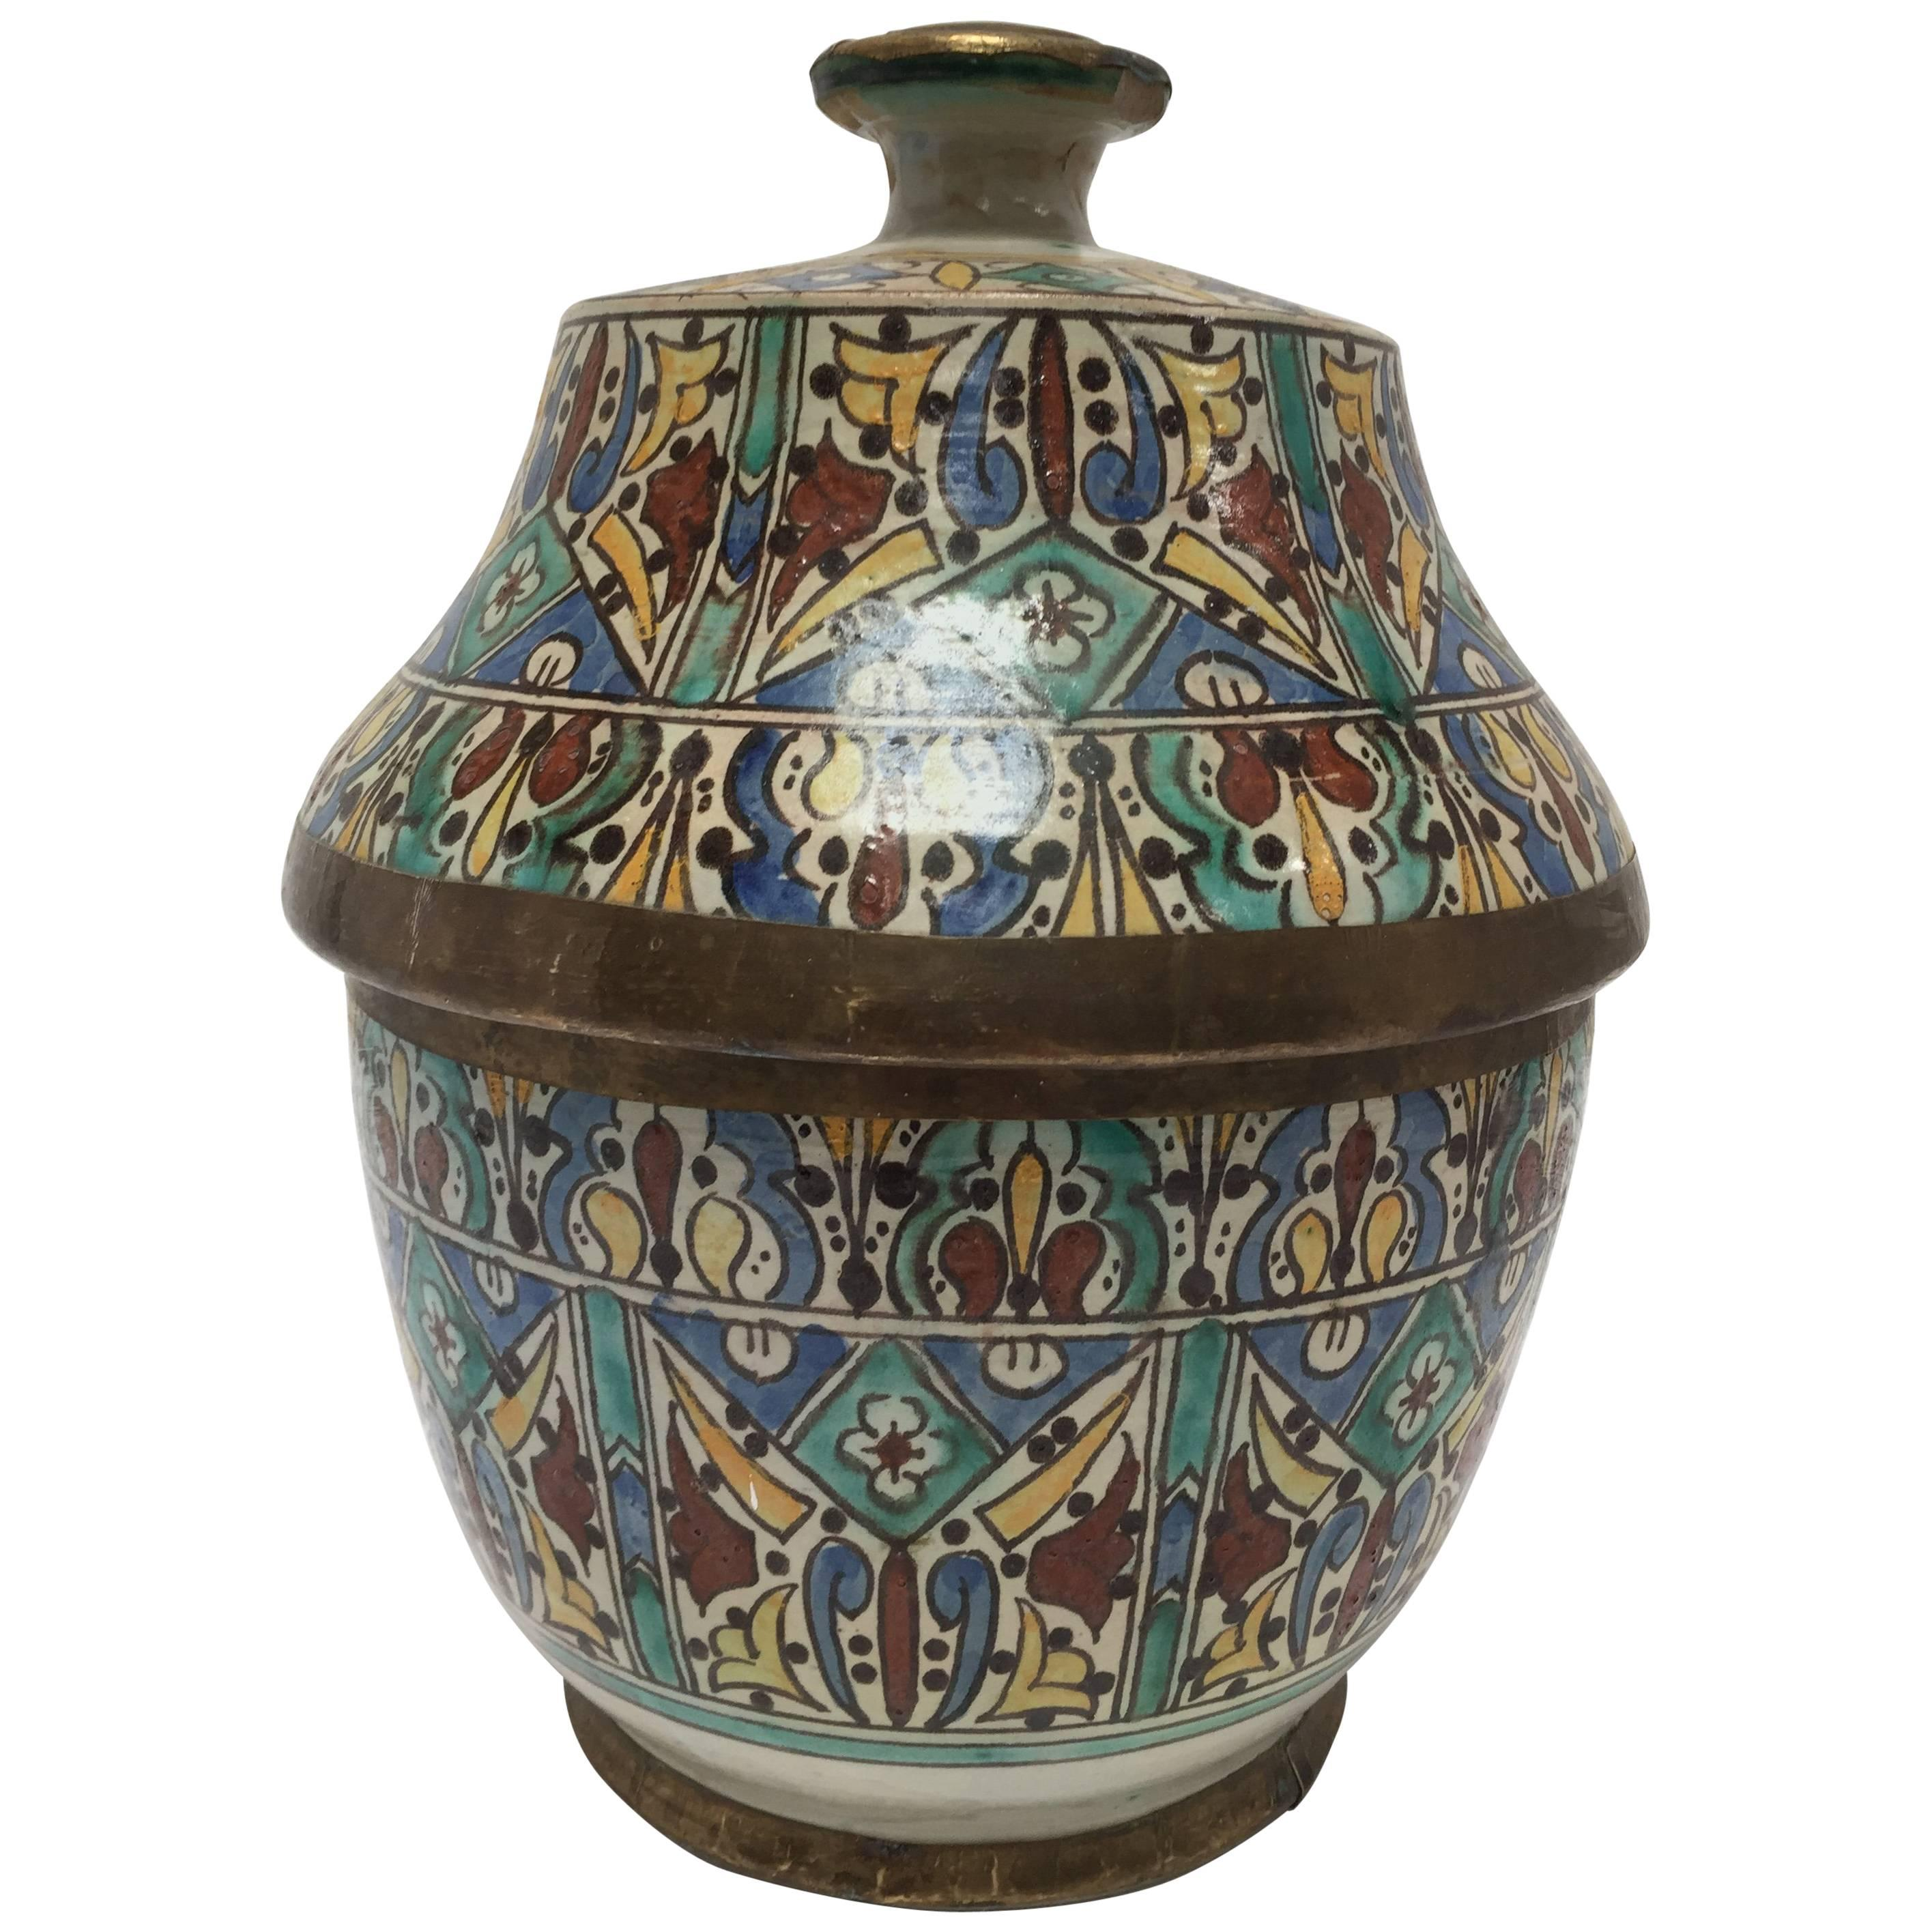 Moorish Ceramic Glazed Storage Tureen Jar with Cover Handcrafted in Fez Morocco